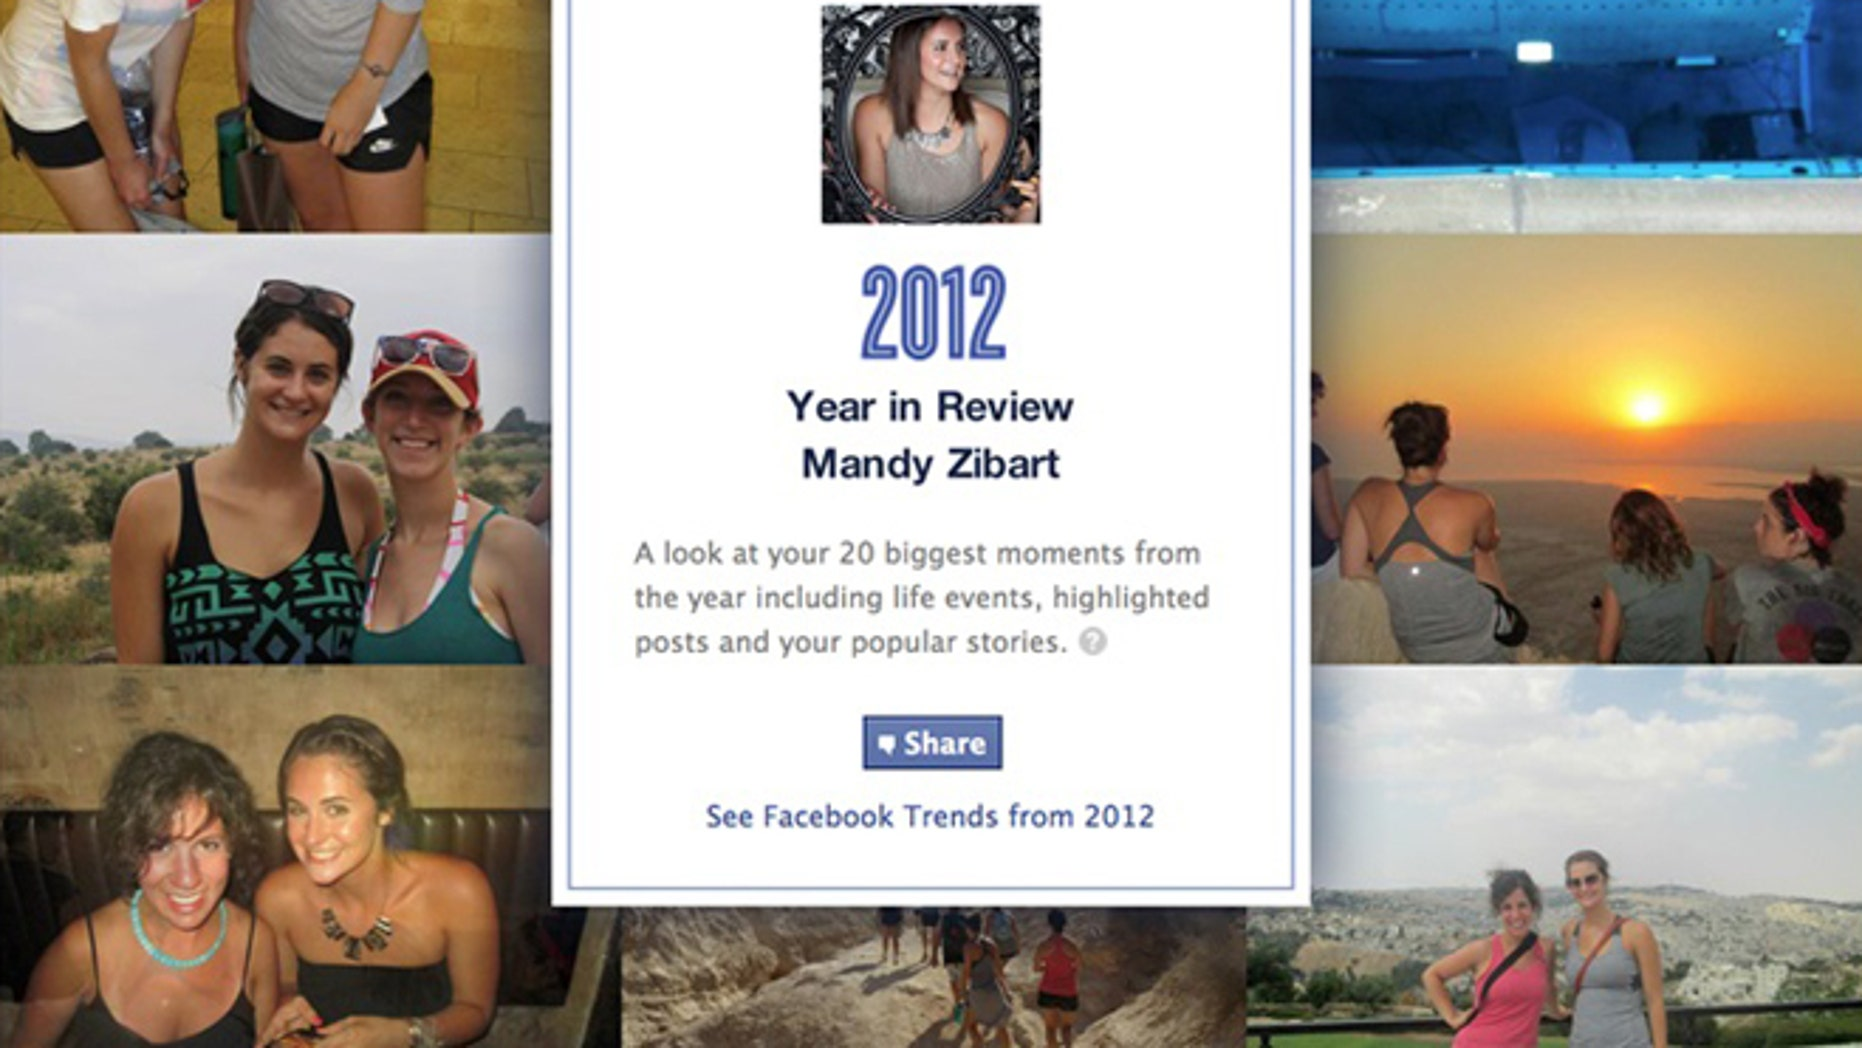 By going to Facebook.com/yearinreview, you can see the 20 biggest moments from your own year, including life events, highlighted posts and your most popular stories.